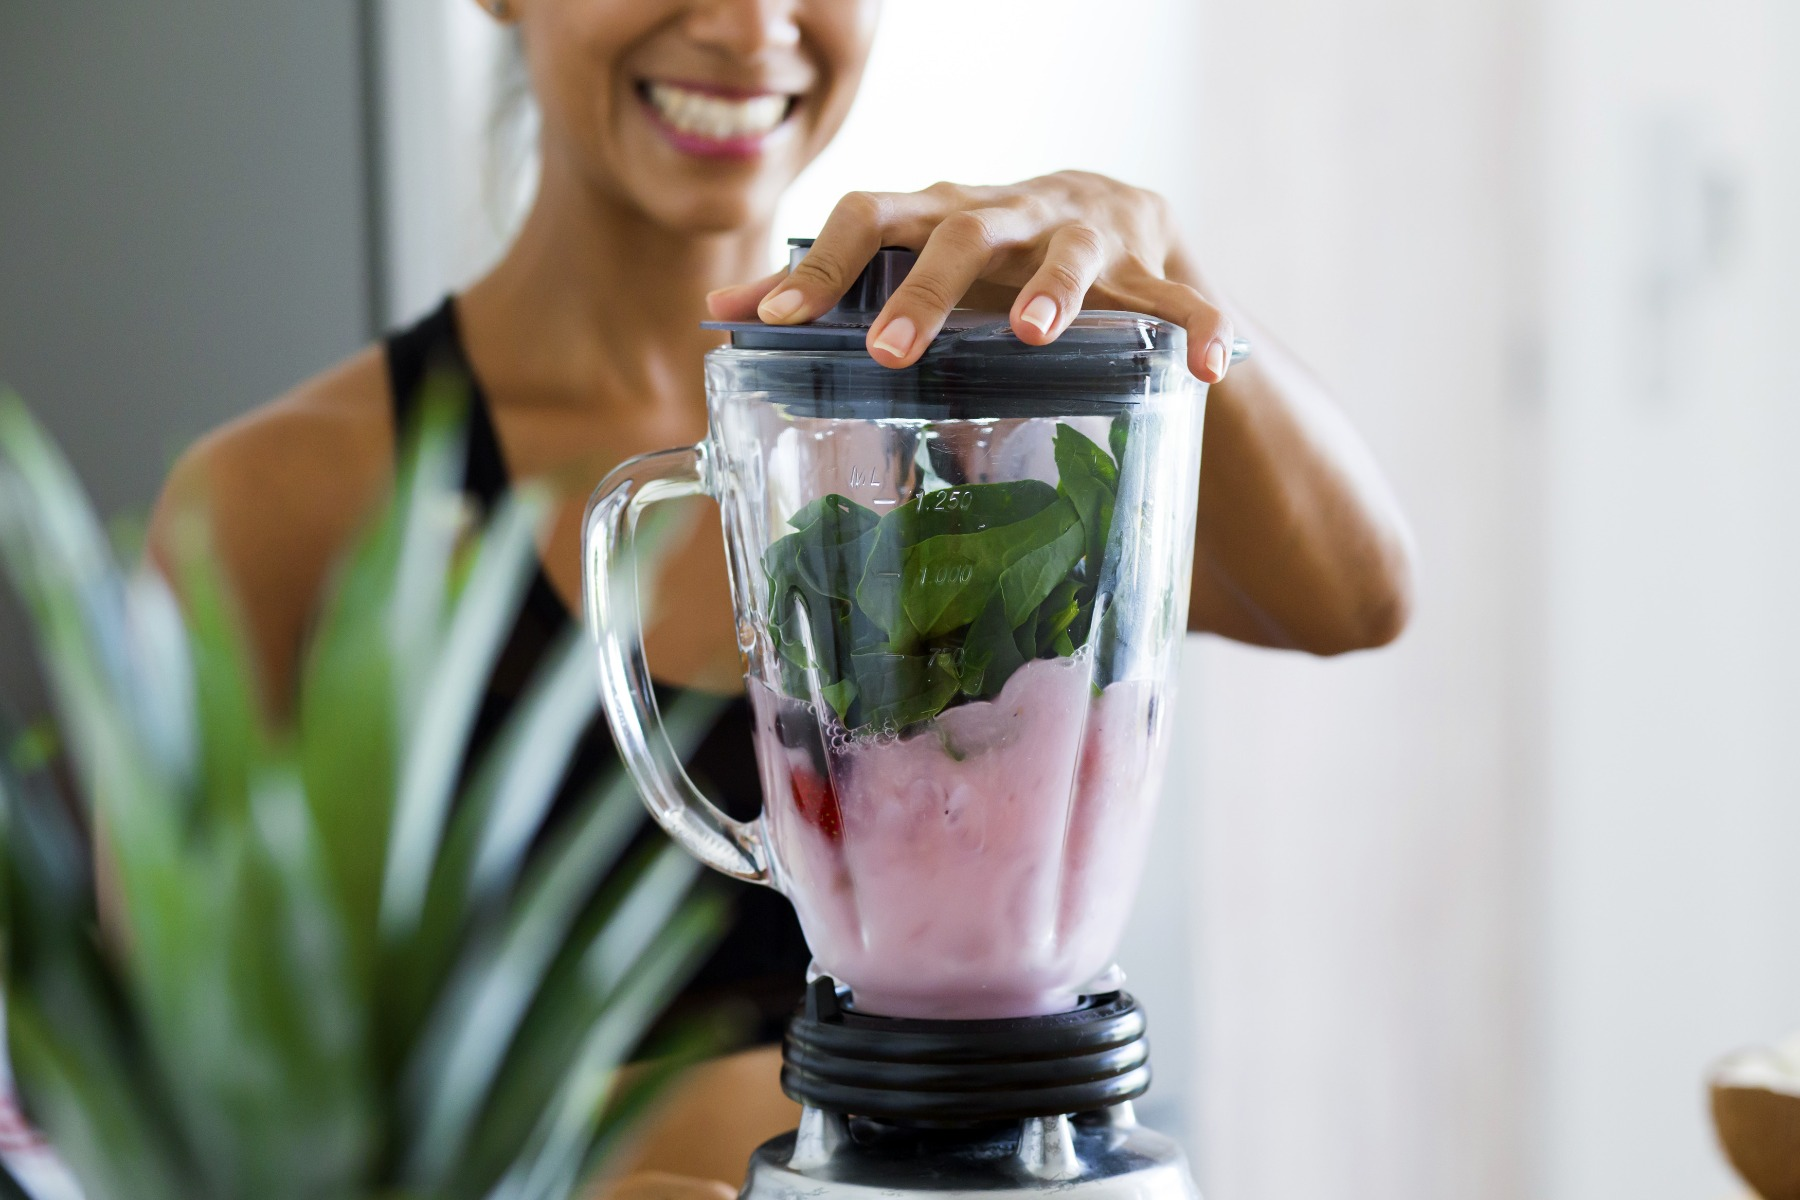 Making smoothie is easy